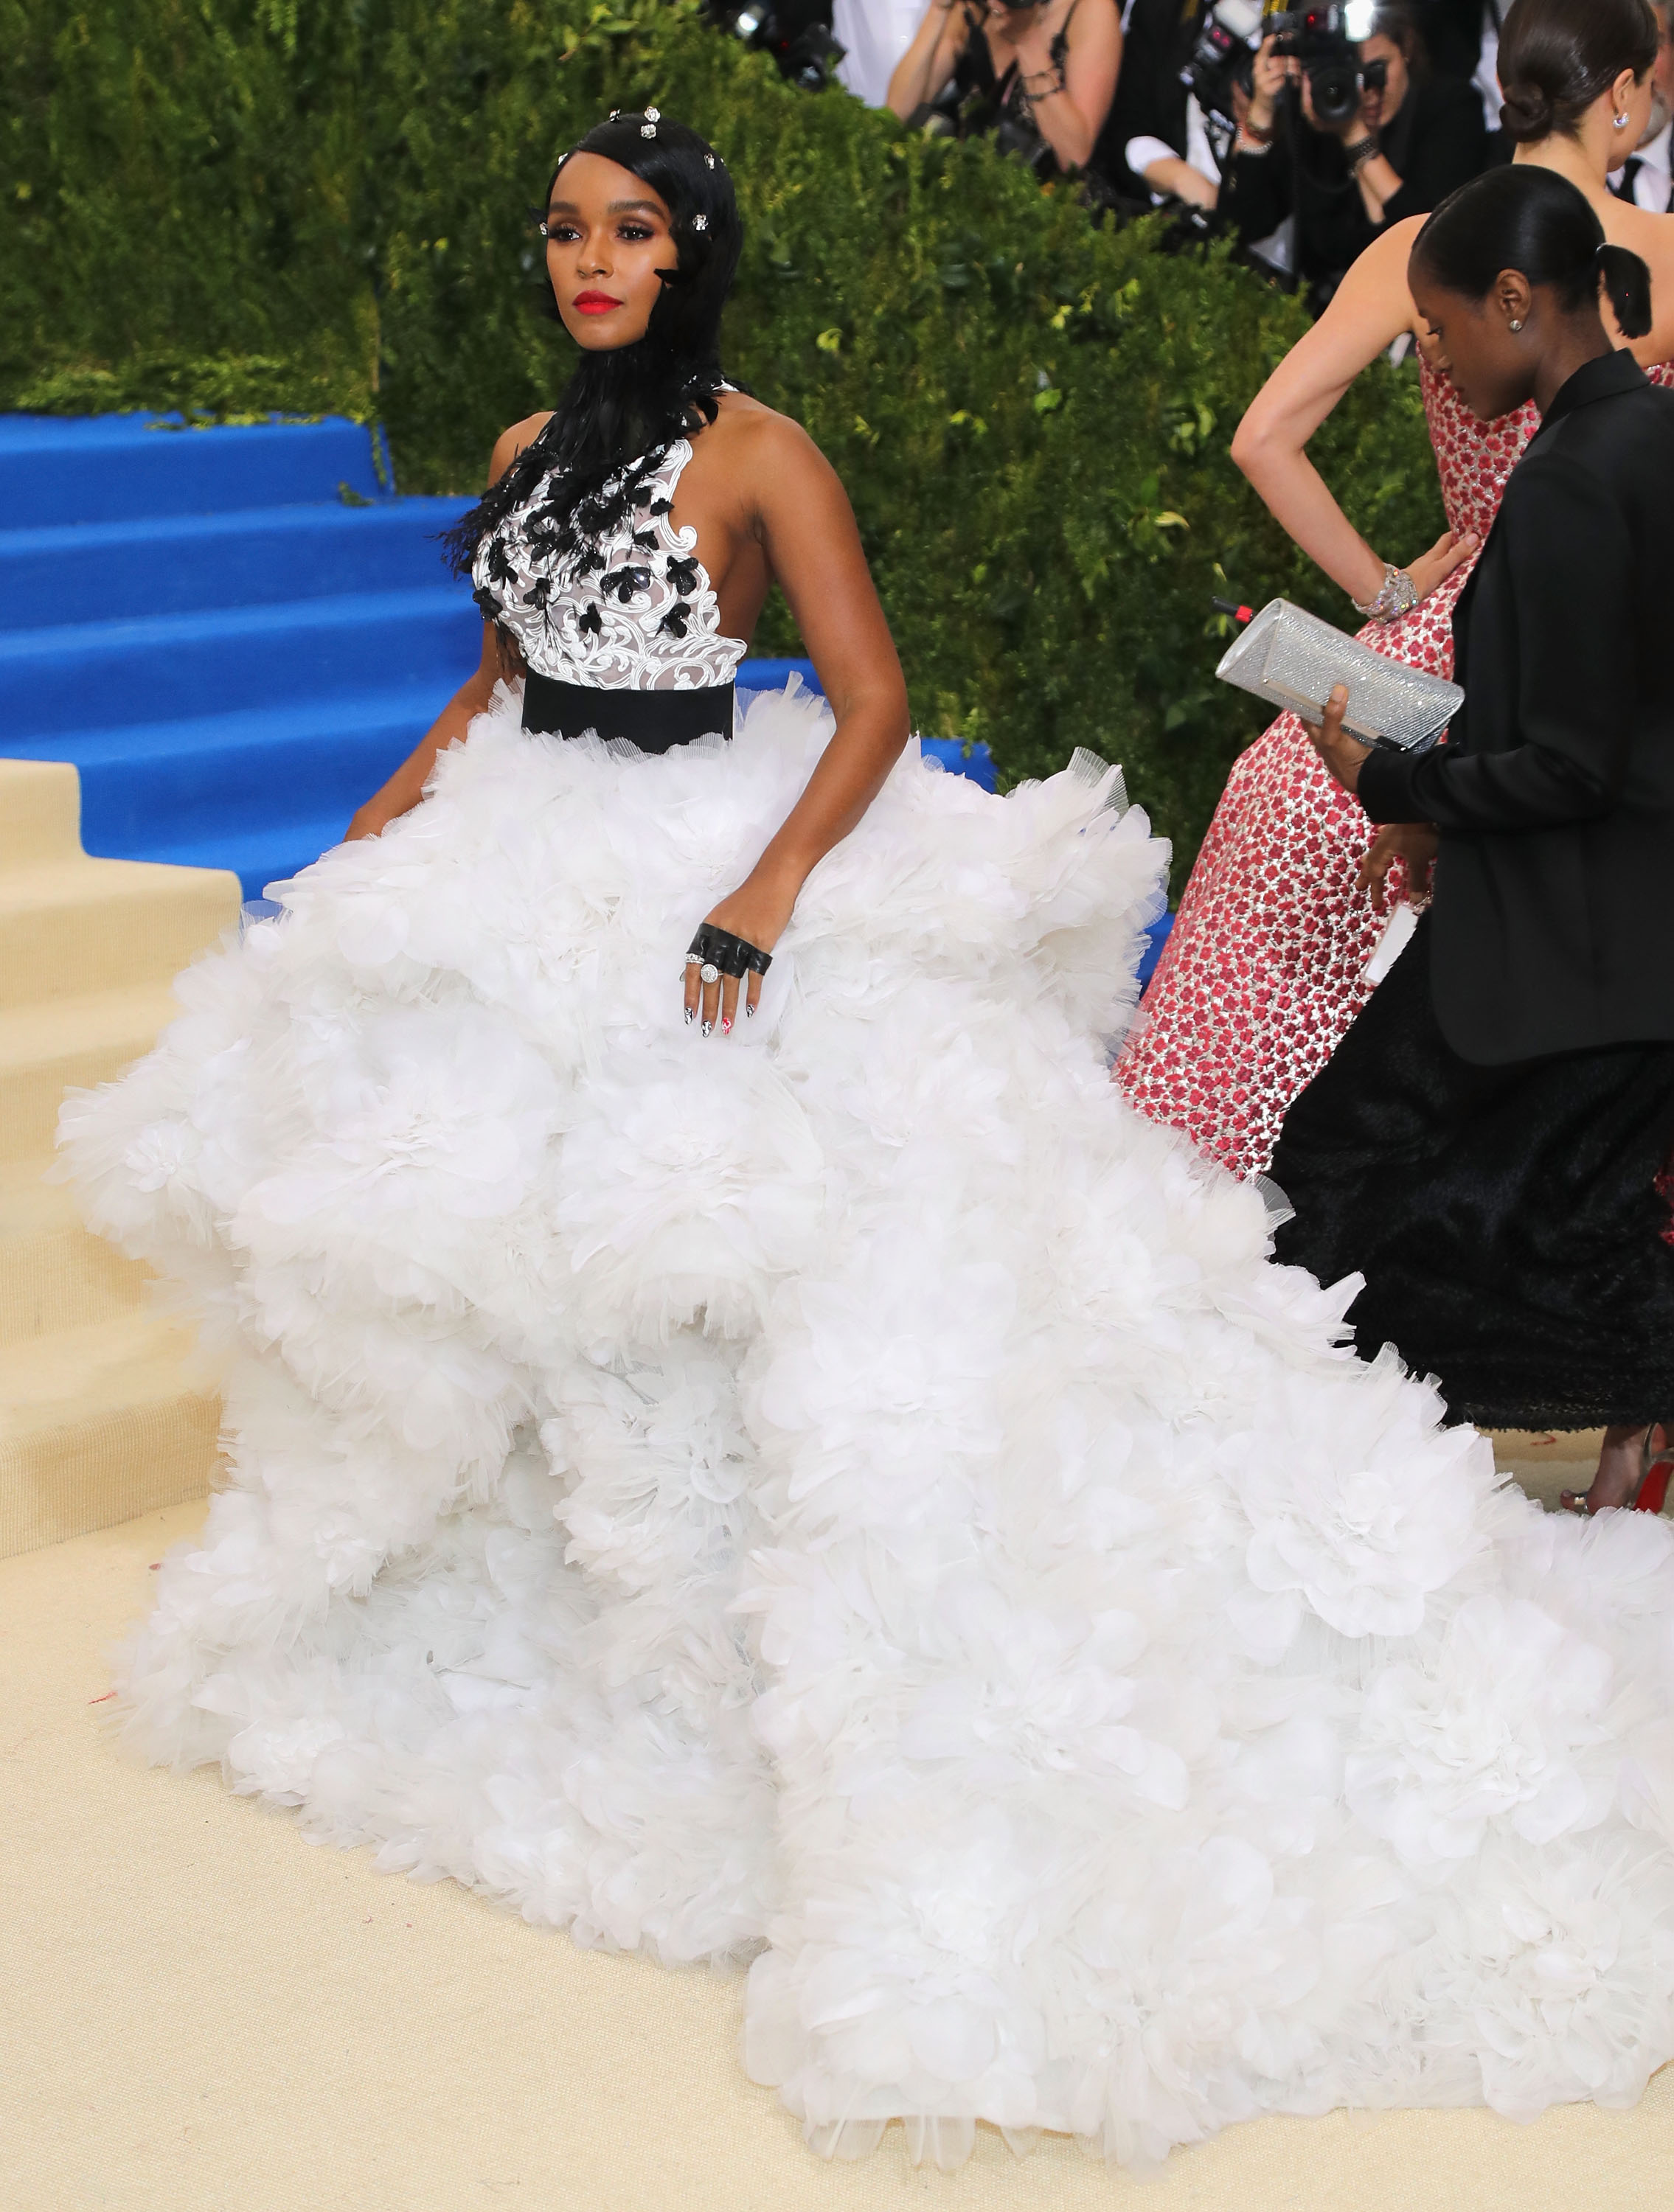 Janelle Monae Met Gala 2017 Dress